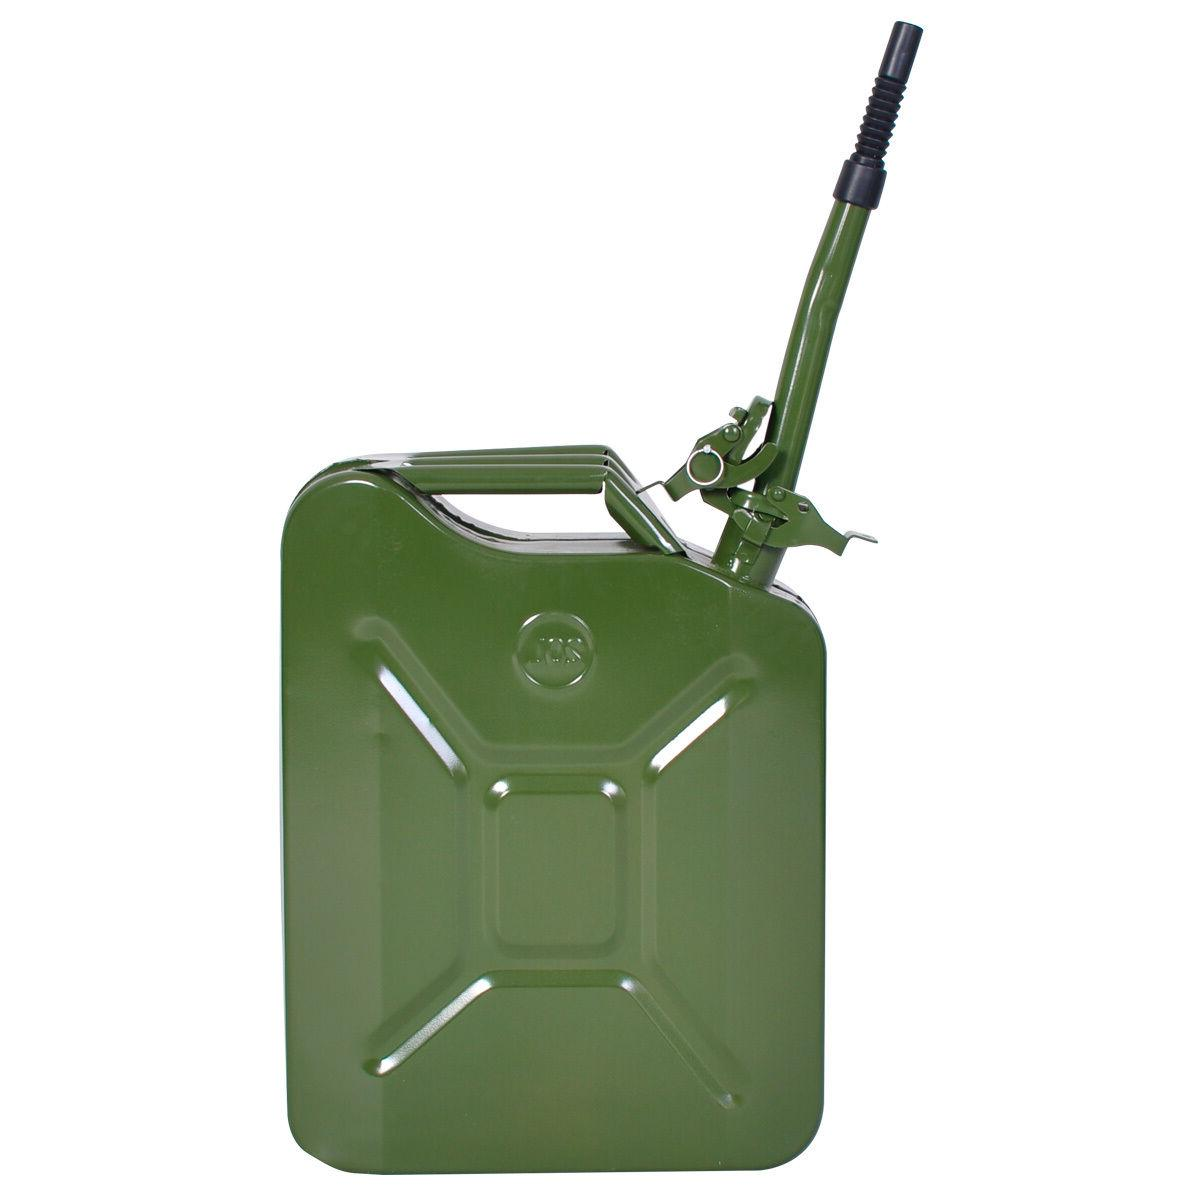 Jerry 20L Fuel Tank Emergency Military